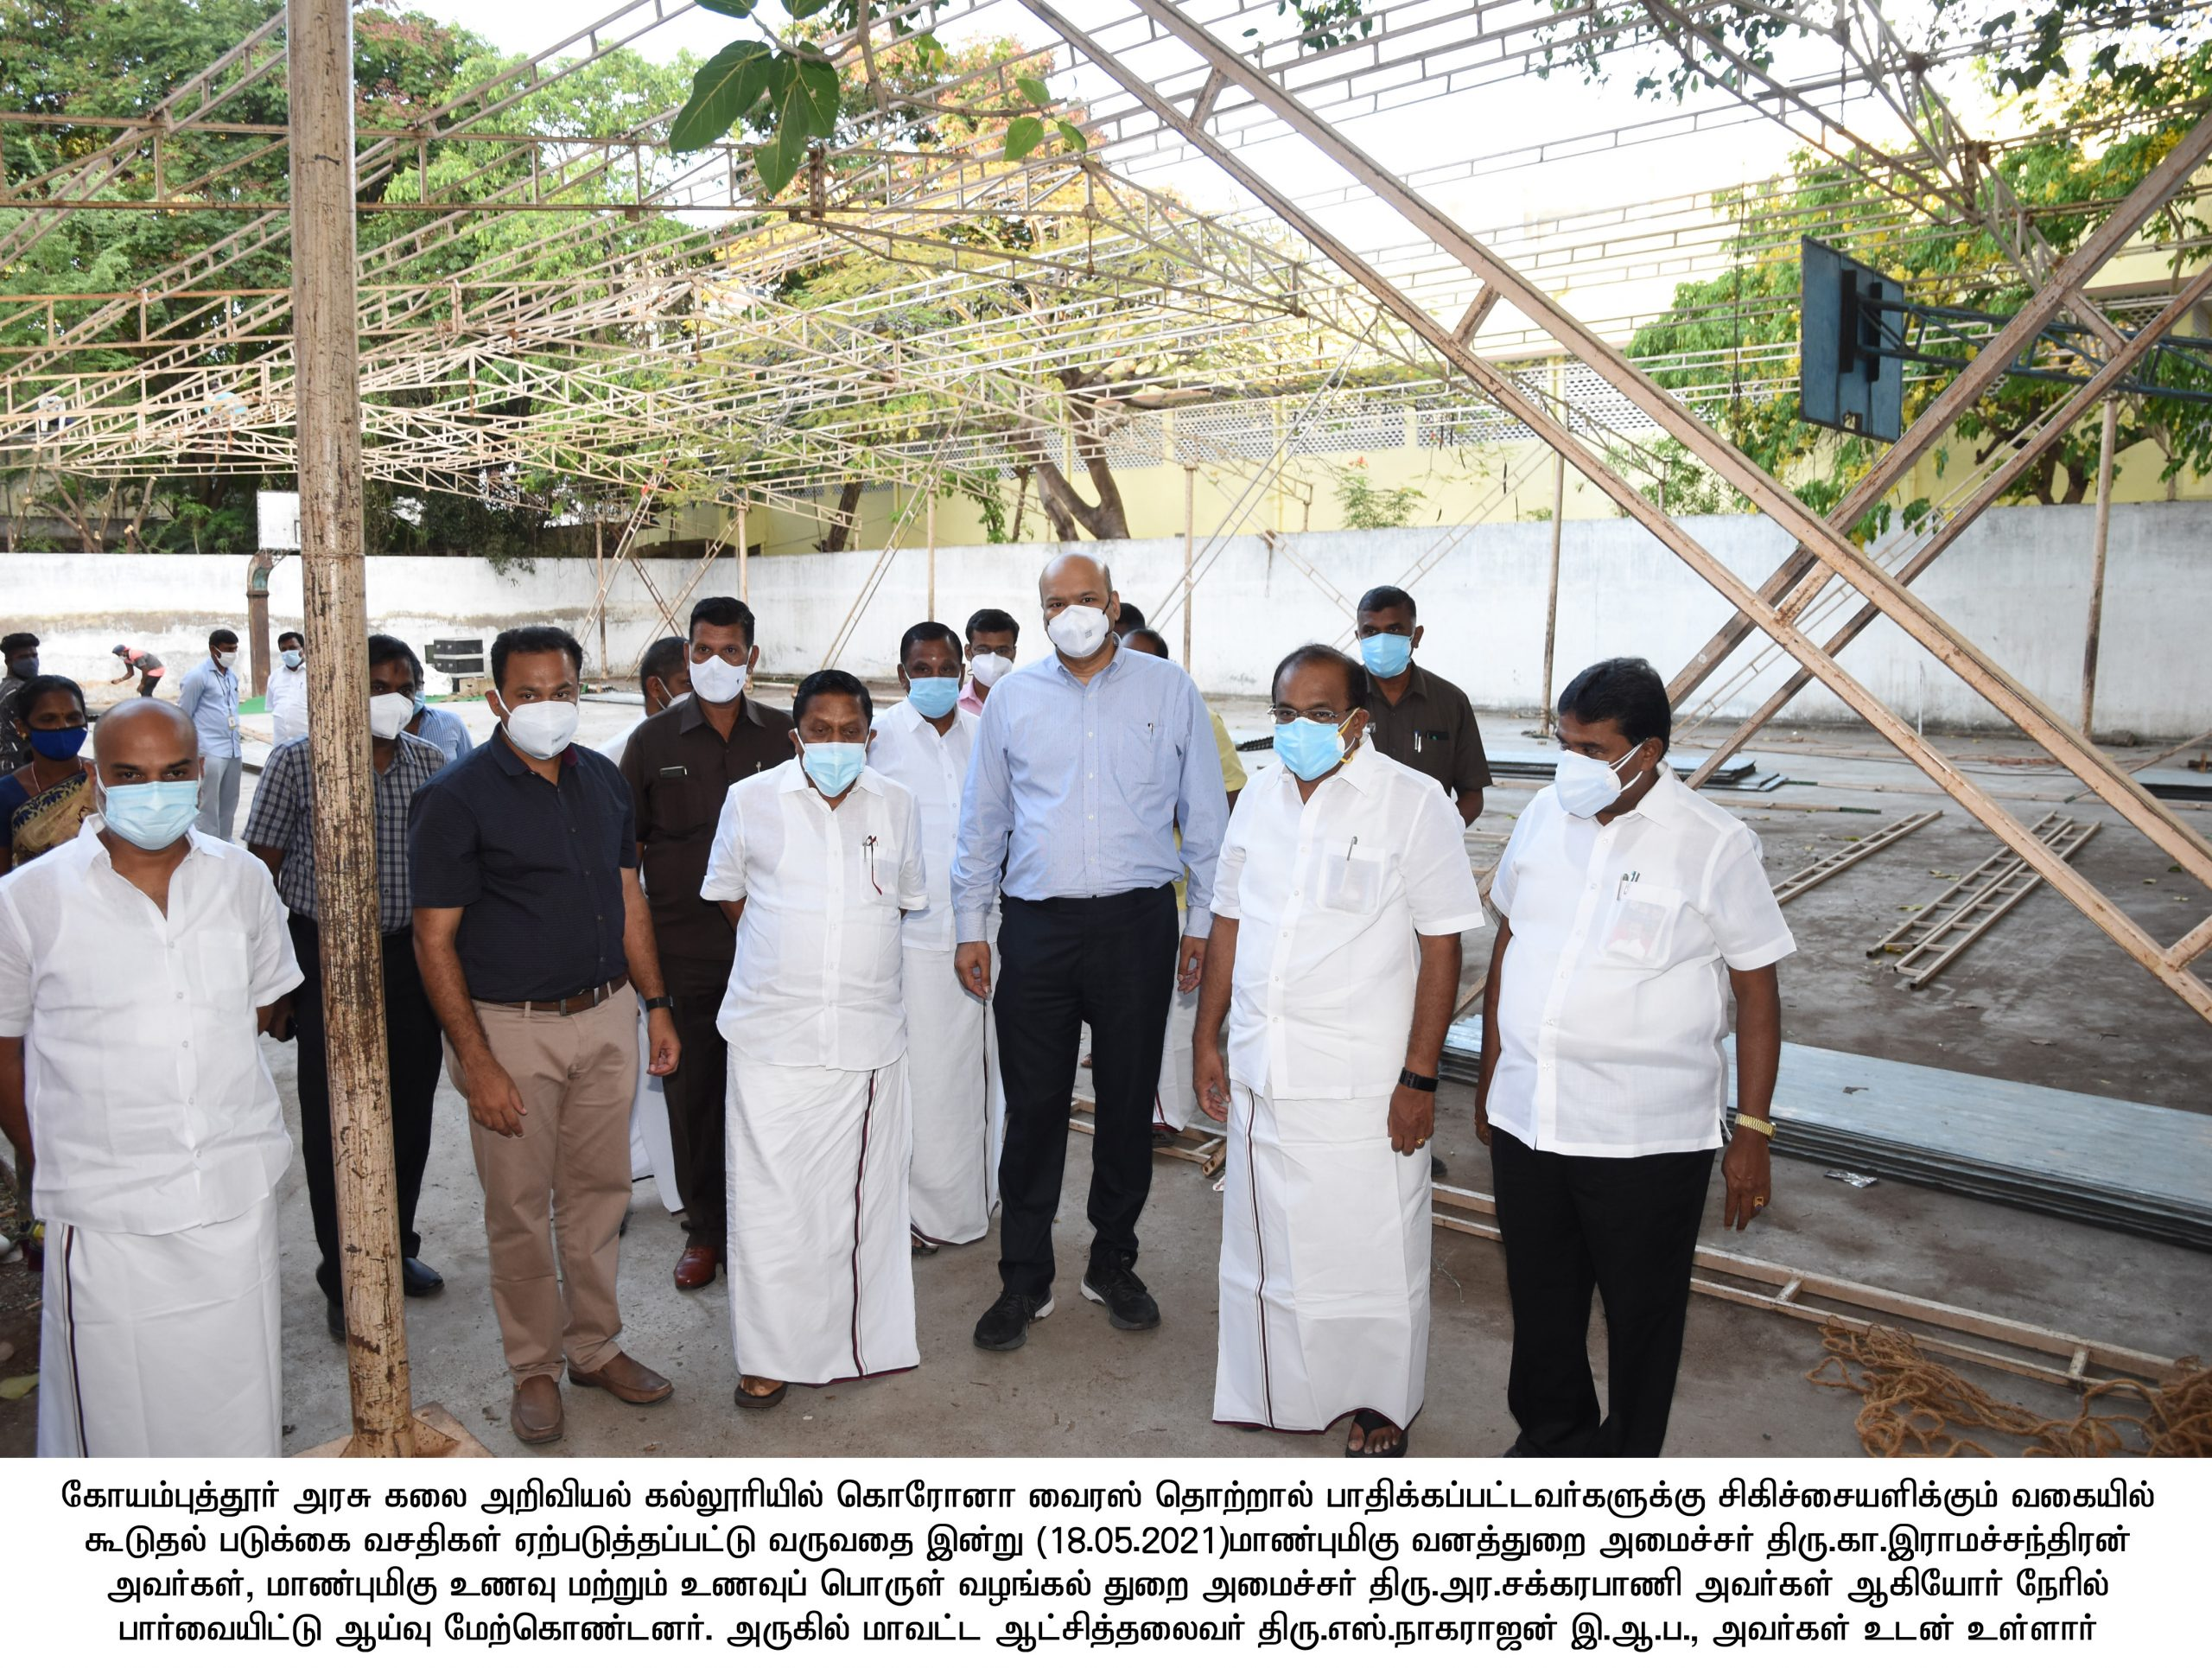 Corona Virus Prevention work inspection by Honble Minister for Forest and Honble Minister for Food and Civil Supplies.